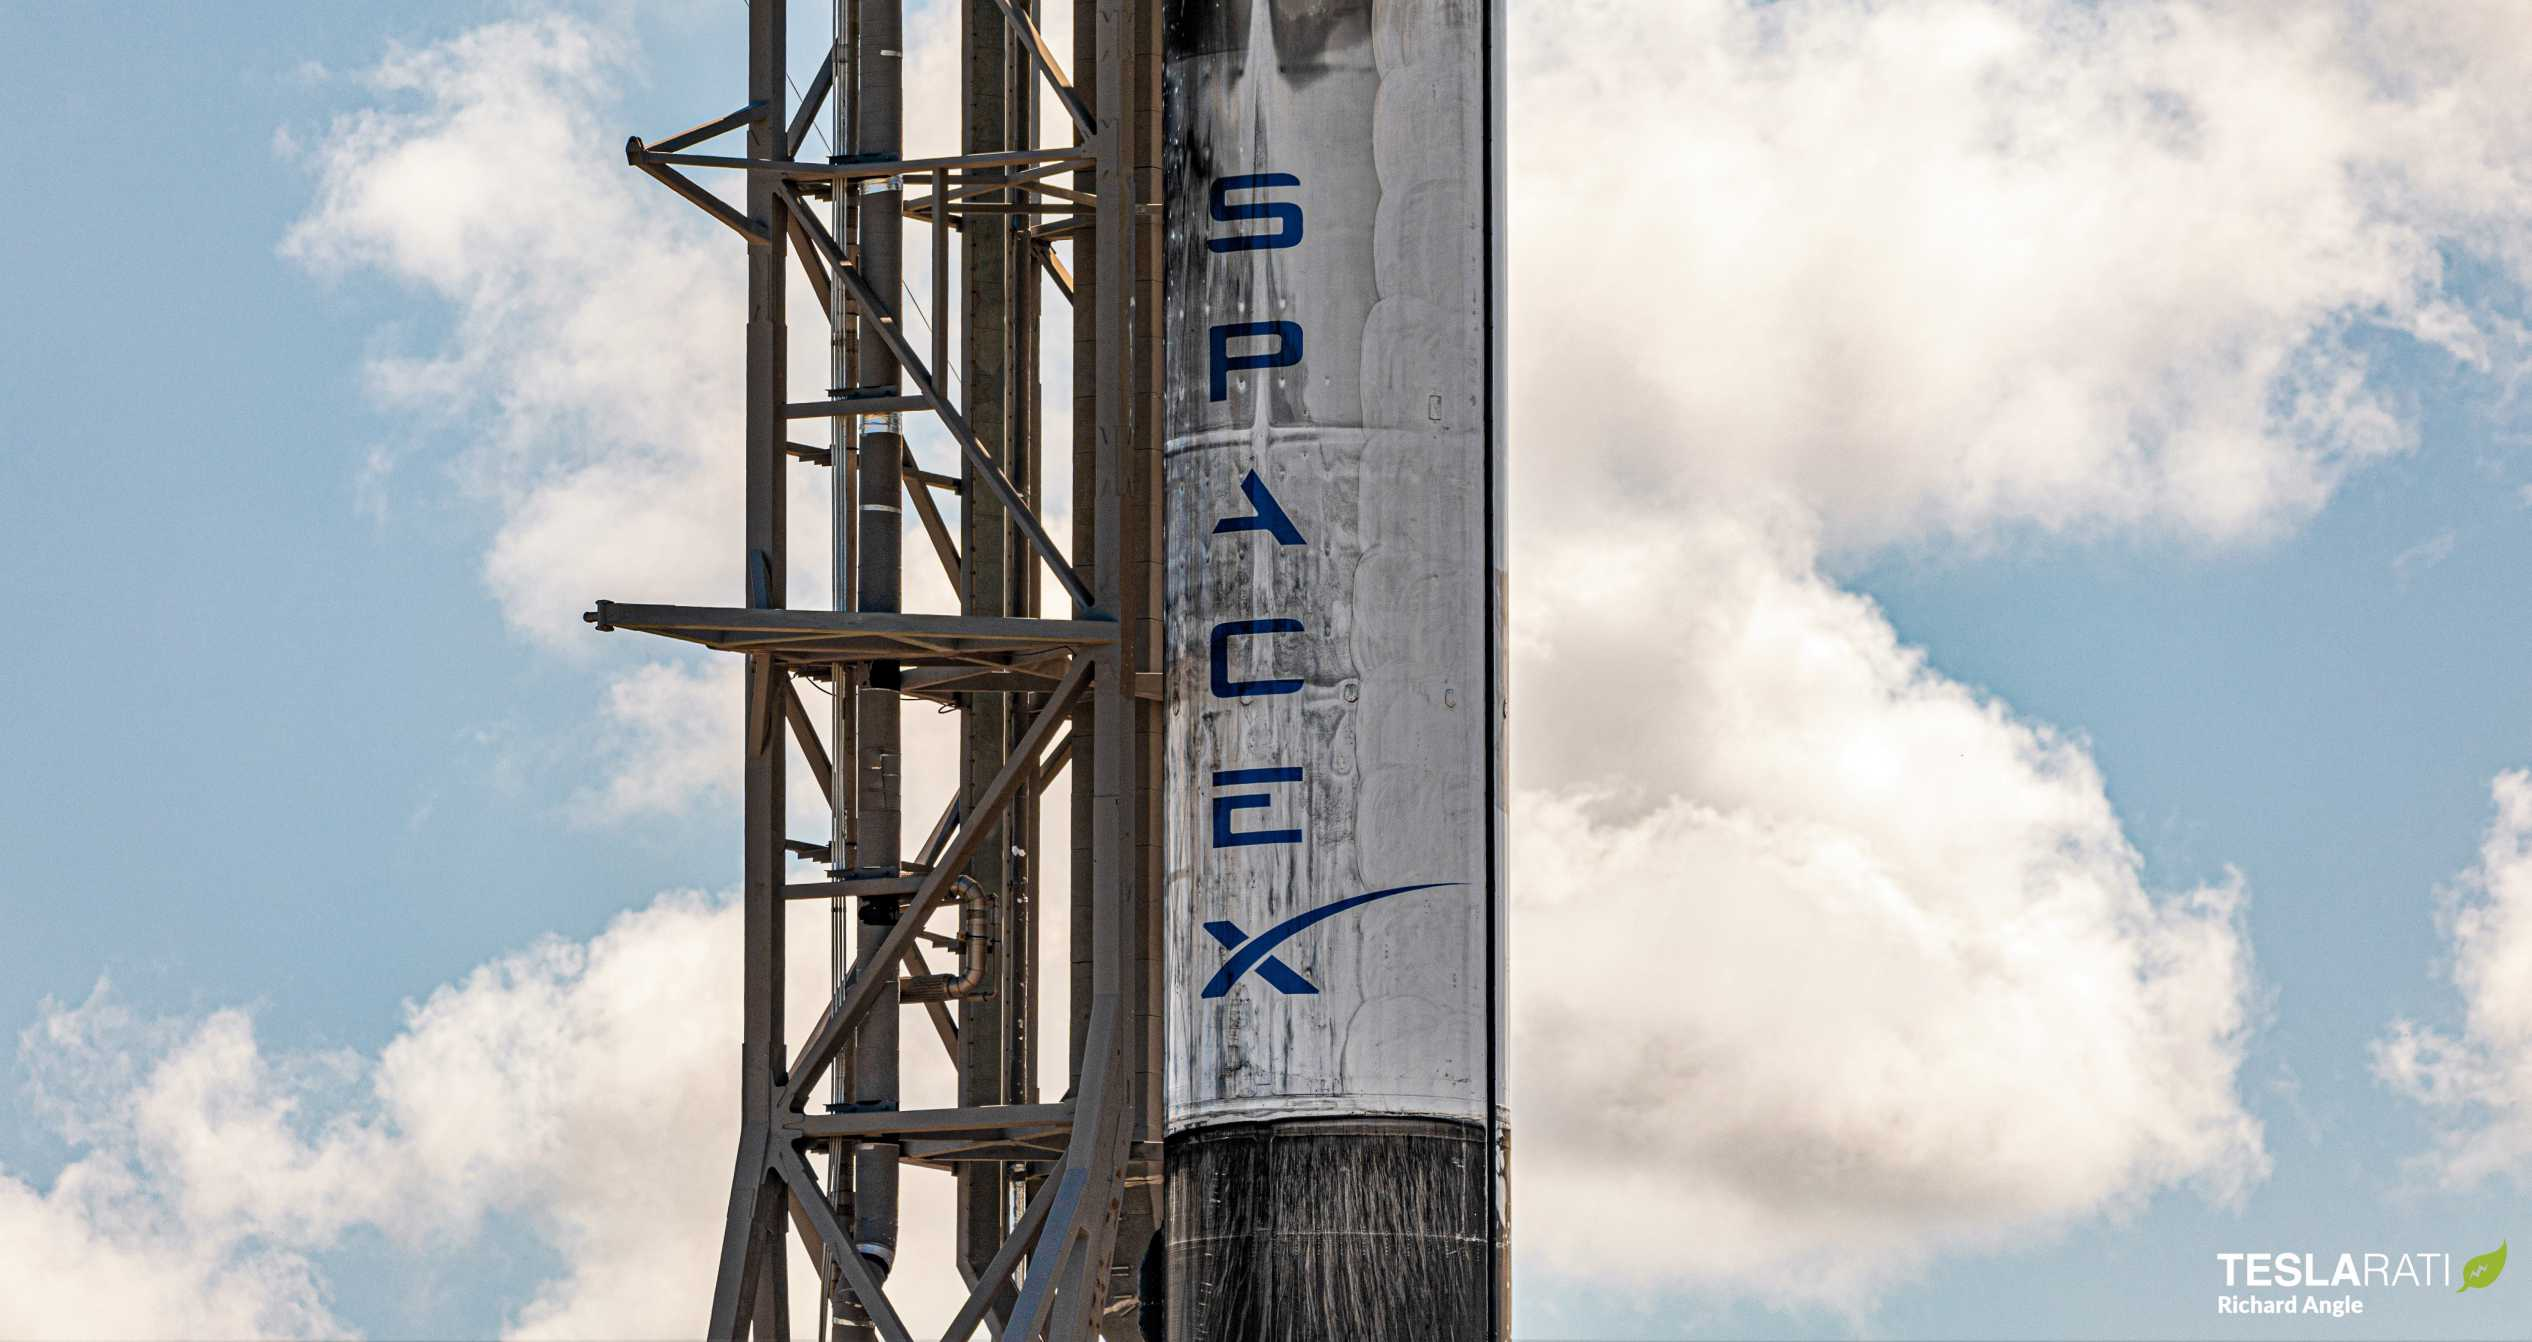 Starlink V1 L8 Falcon 9 B1059 LC40 061220 (Richard Angle) prelaunch 5 crop (c)